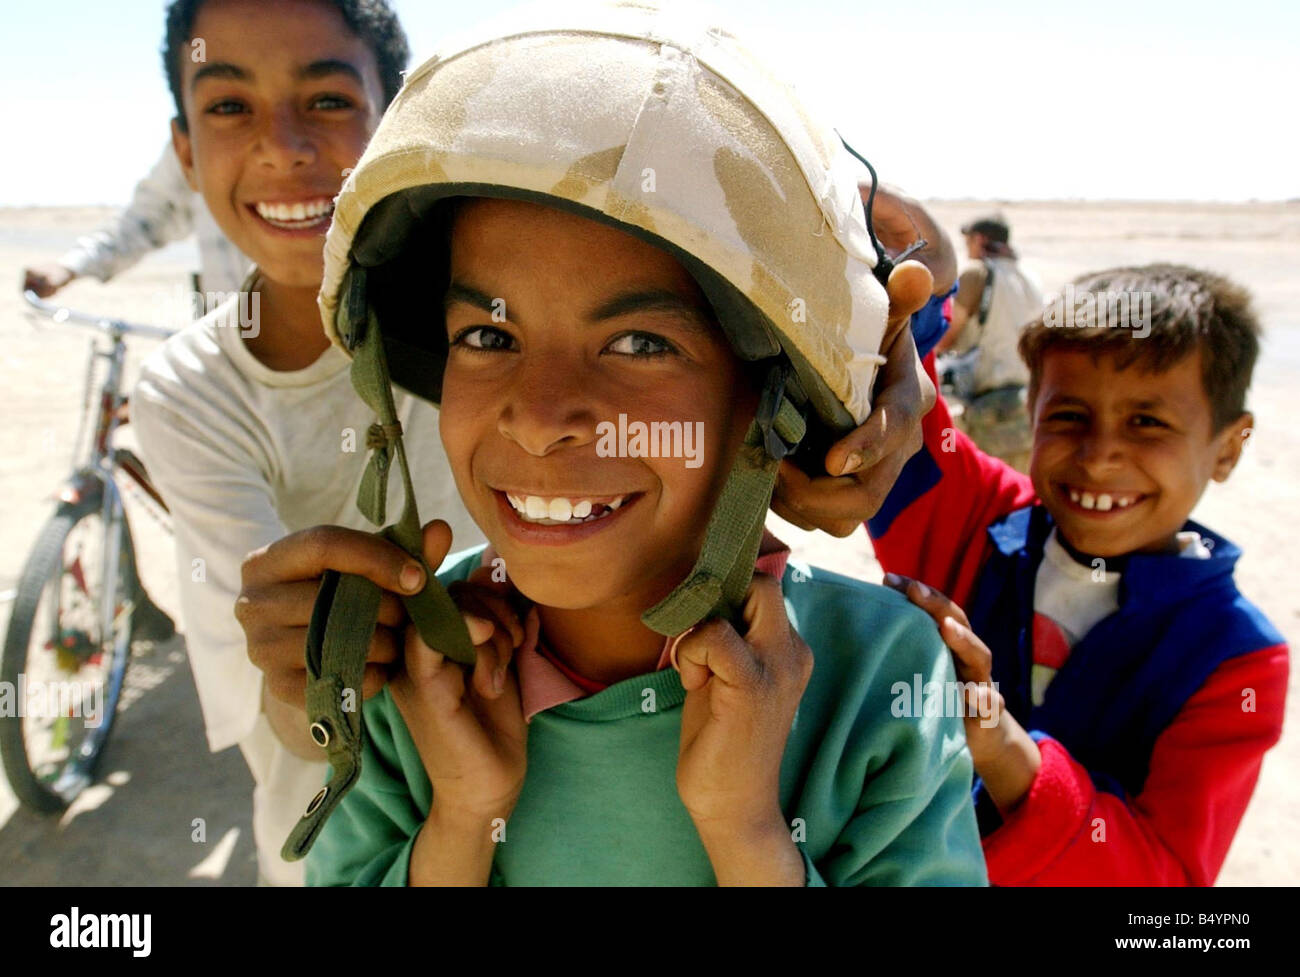 CHILDREN FOOL AROUND April 2003 WITH A SOLDIERS HELMET IN IRAQ everettselected - Stock Image